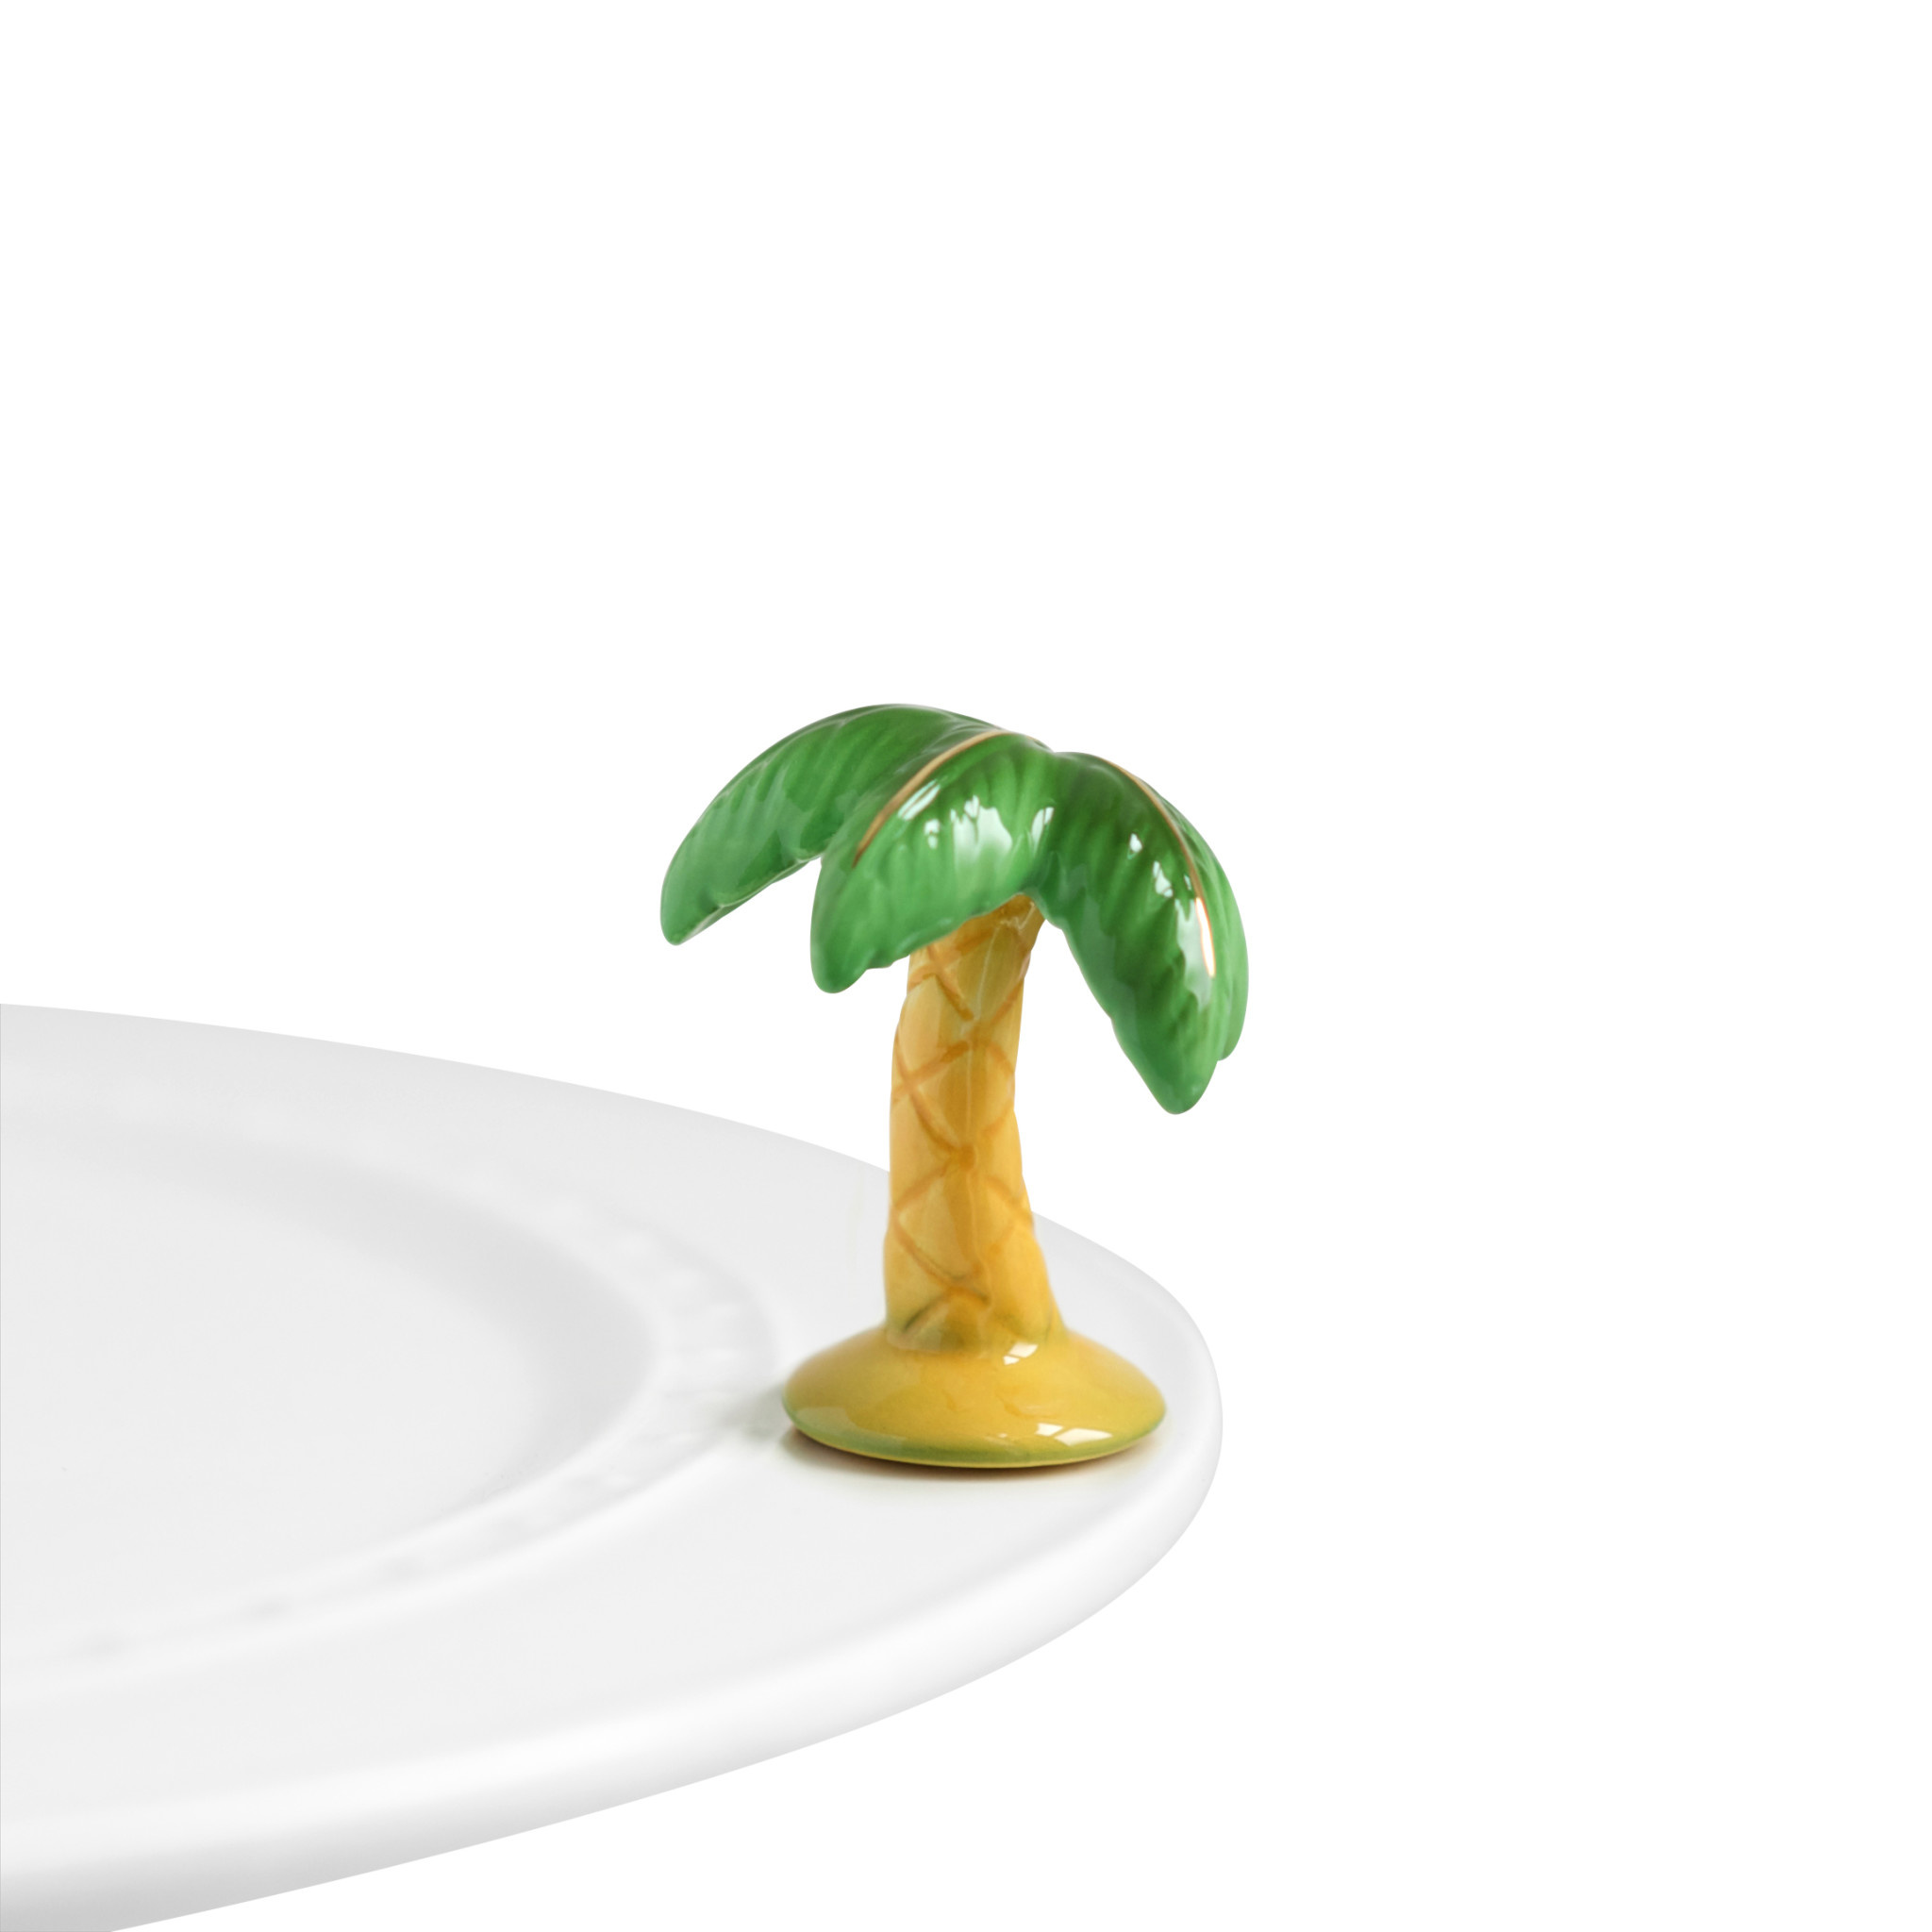 nora fleming in the breeze mini (palm tree)